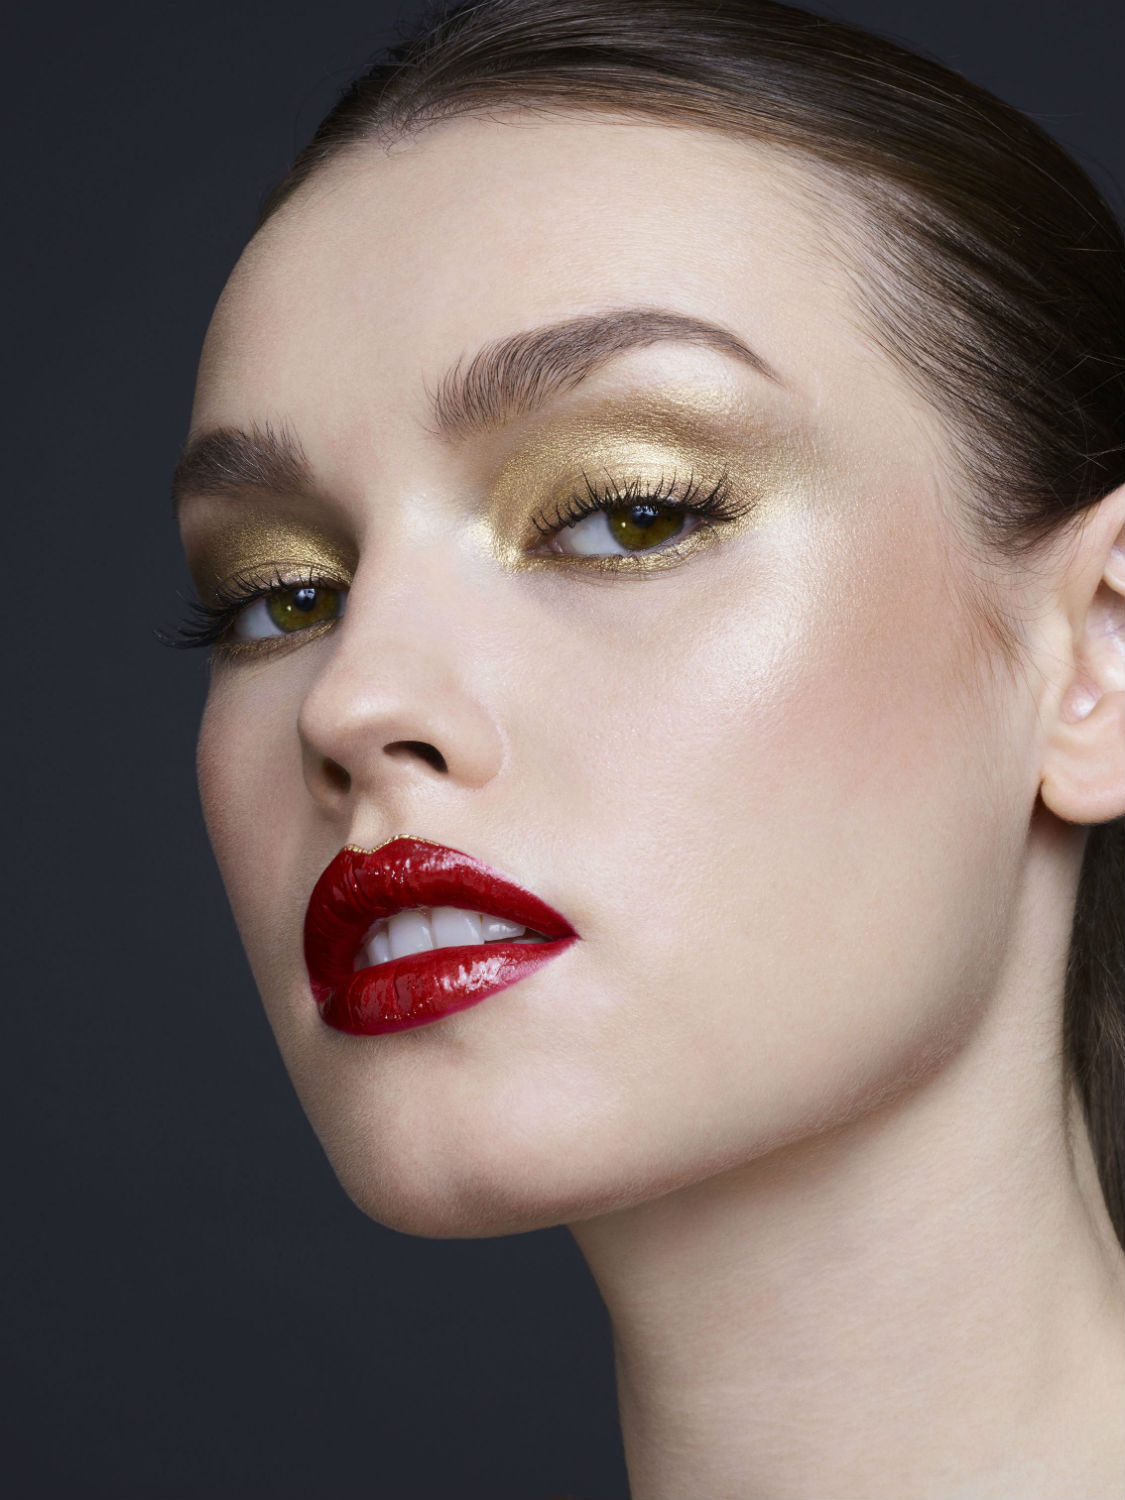 guerlain-electric-look-makeup-collection-holiday-2018-.jpg